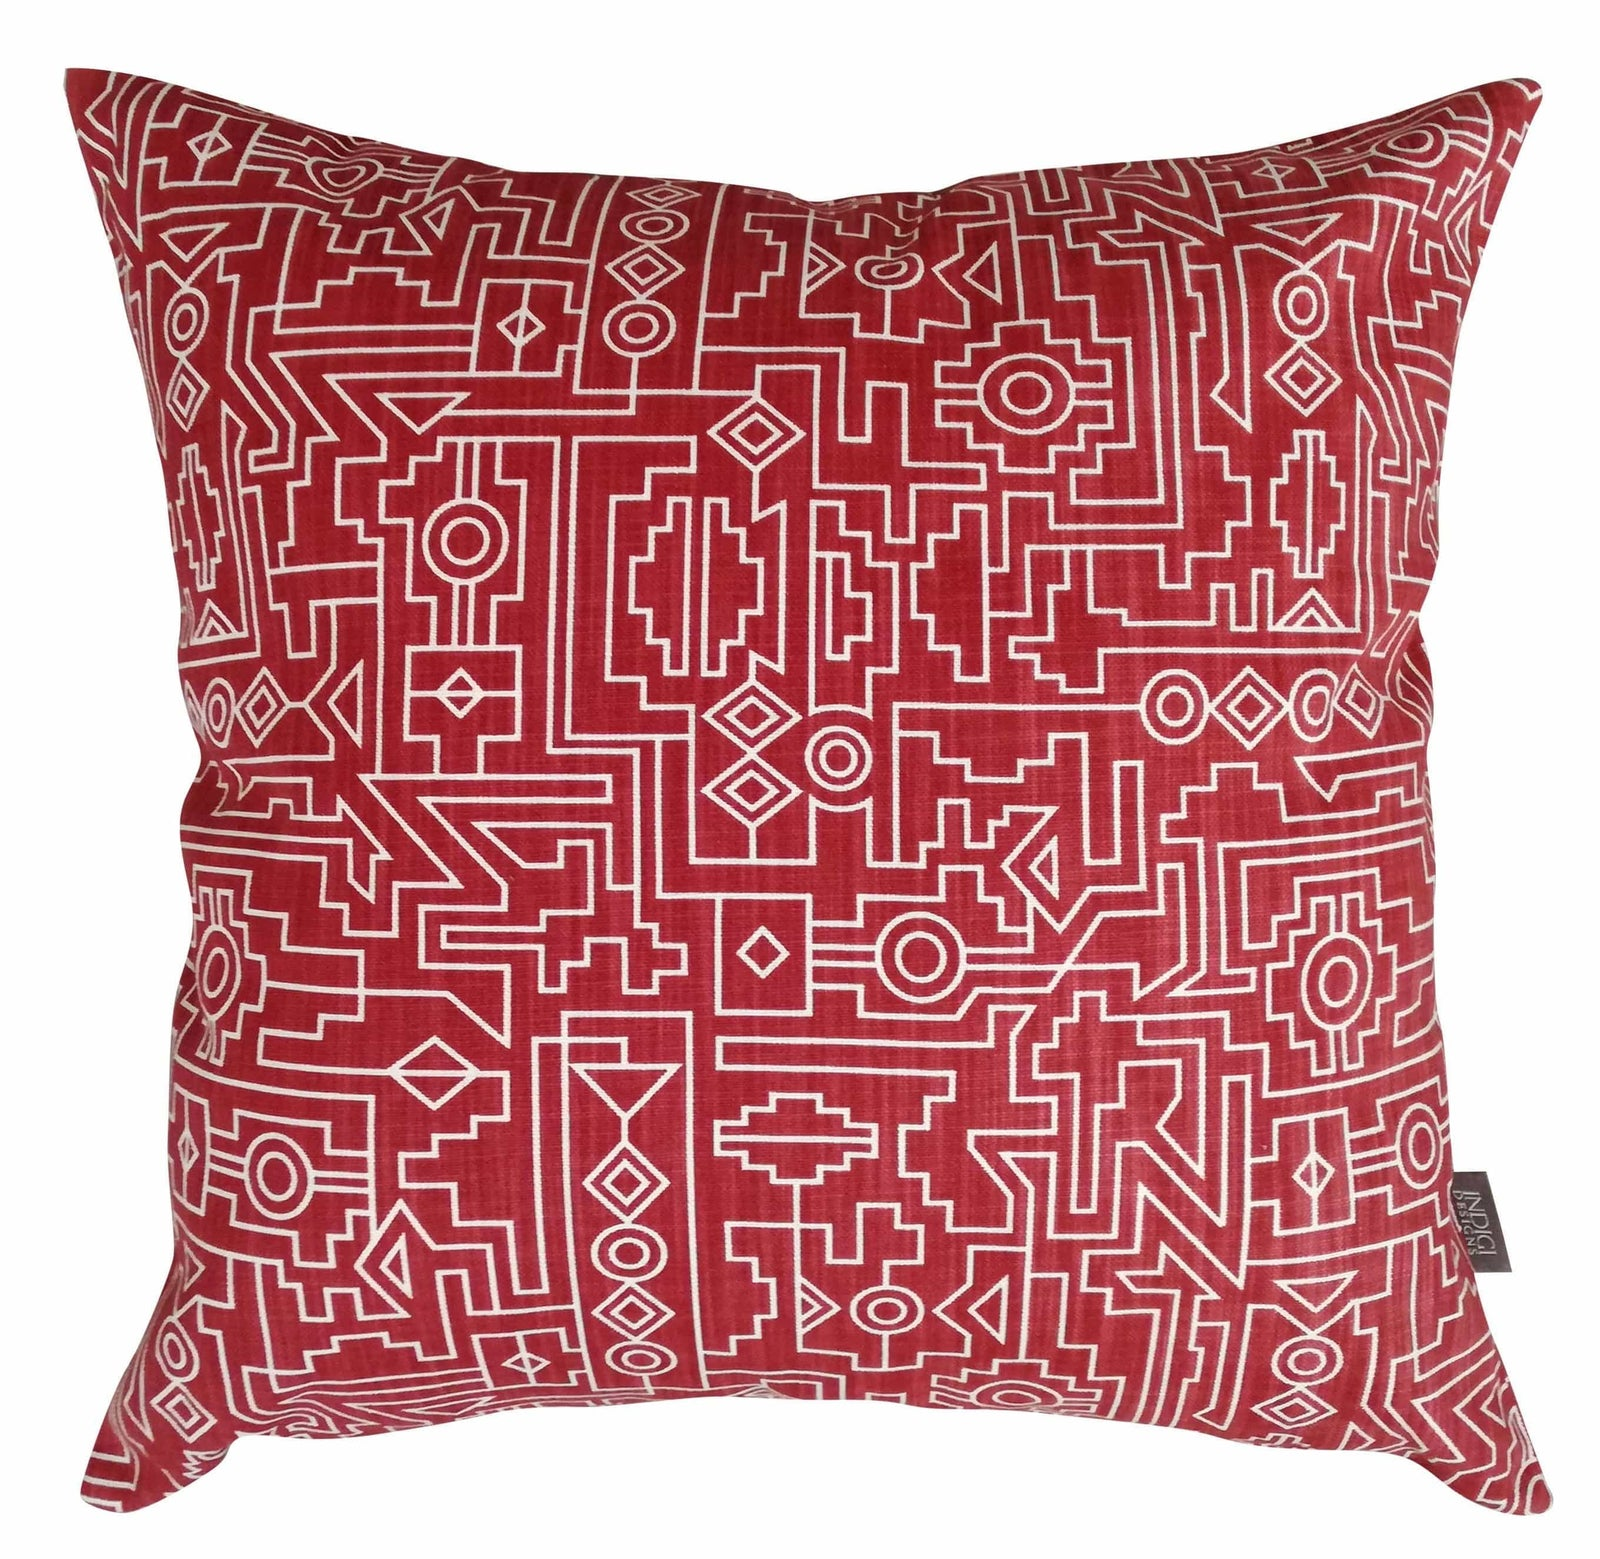 Ndemetric Red Cushion Cover